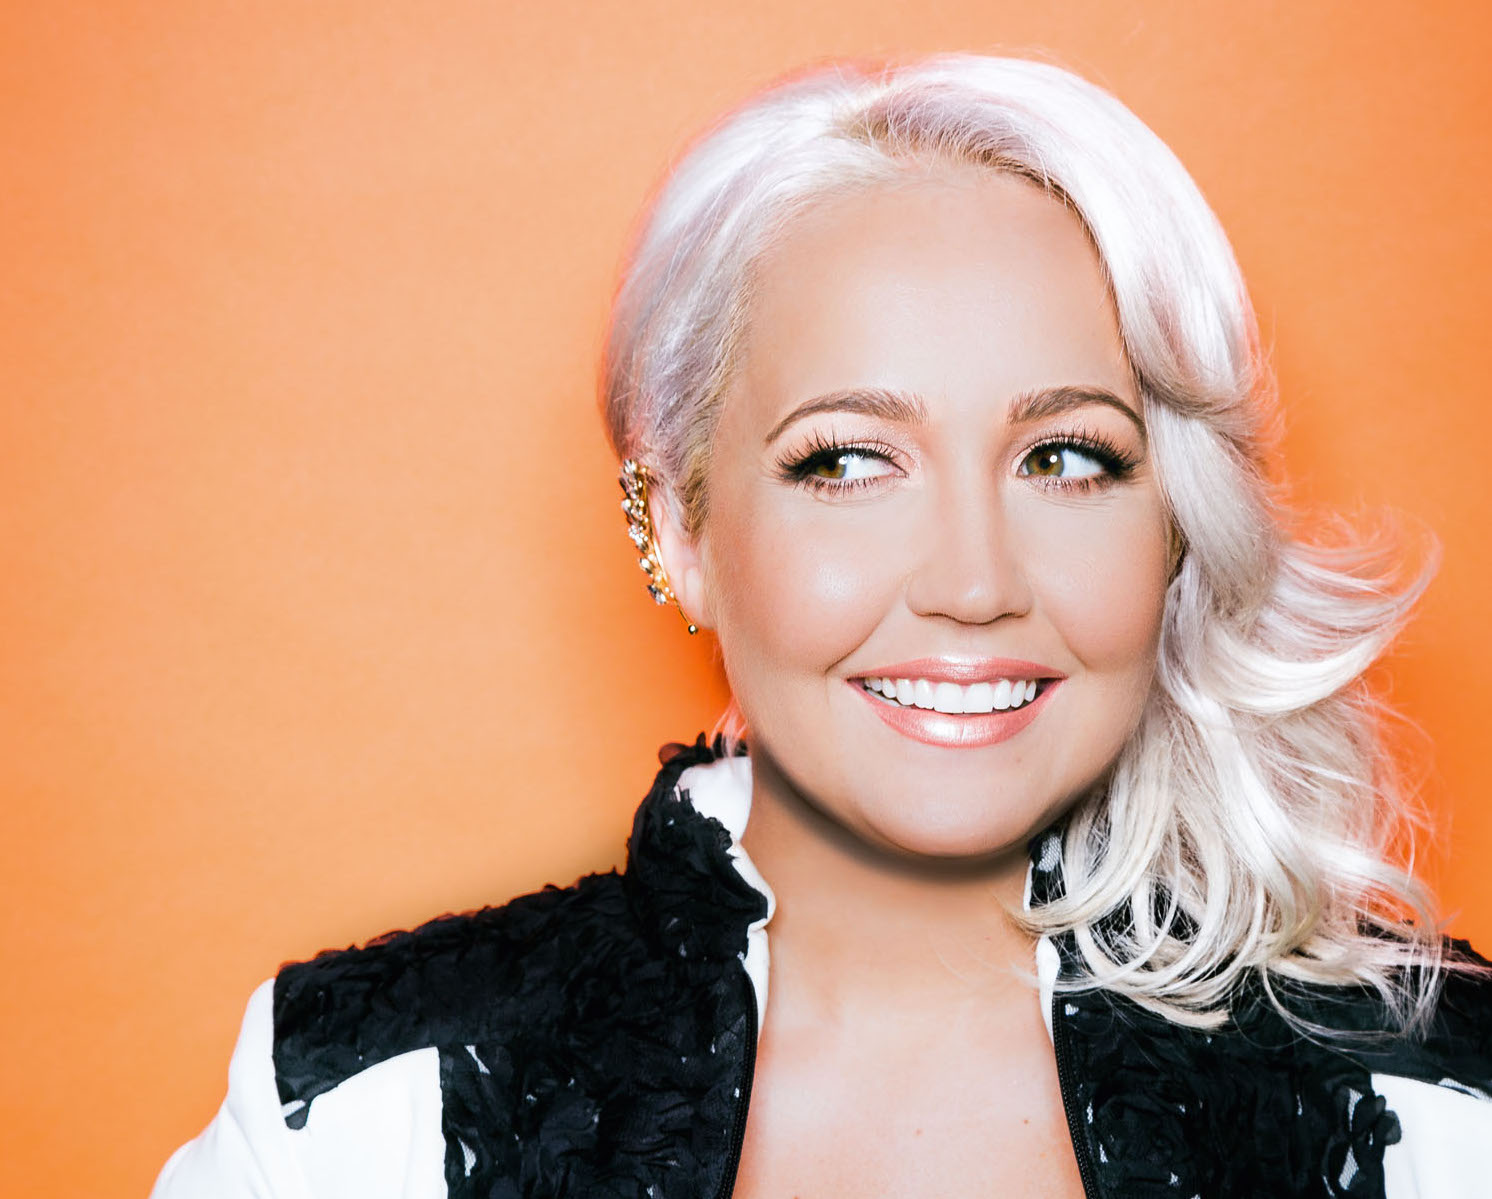 Singer-songwriter Meghan Linsey will perform Oct. 25 at the ArtsQuest Center at SteelStacks in Bethlehem.  (Photo Courtesy of ArtsQuest)